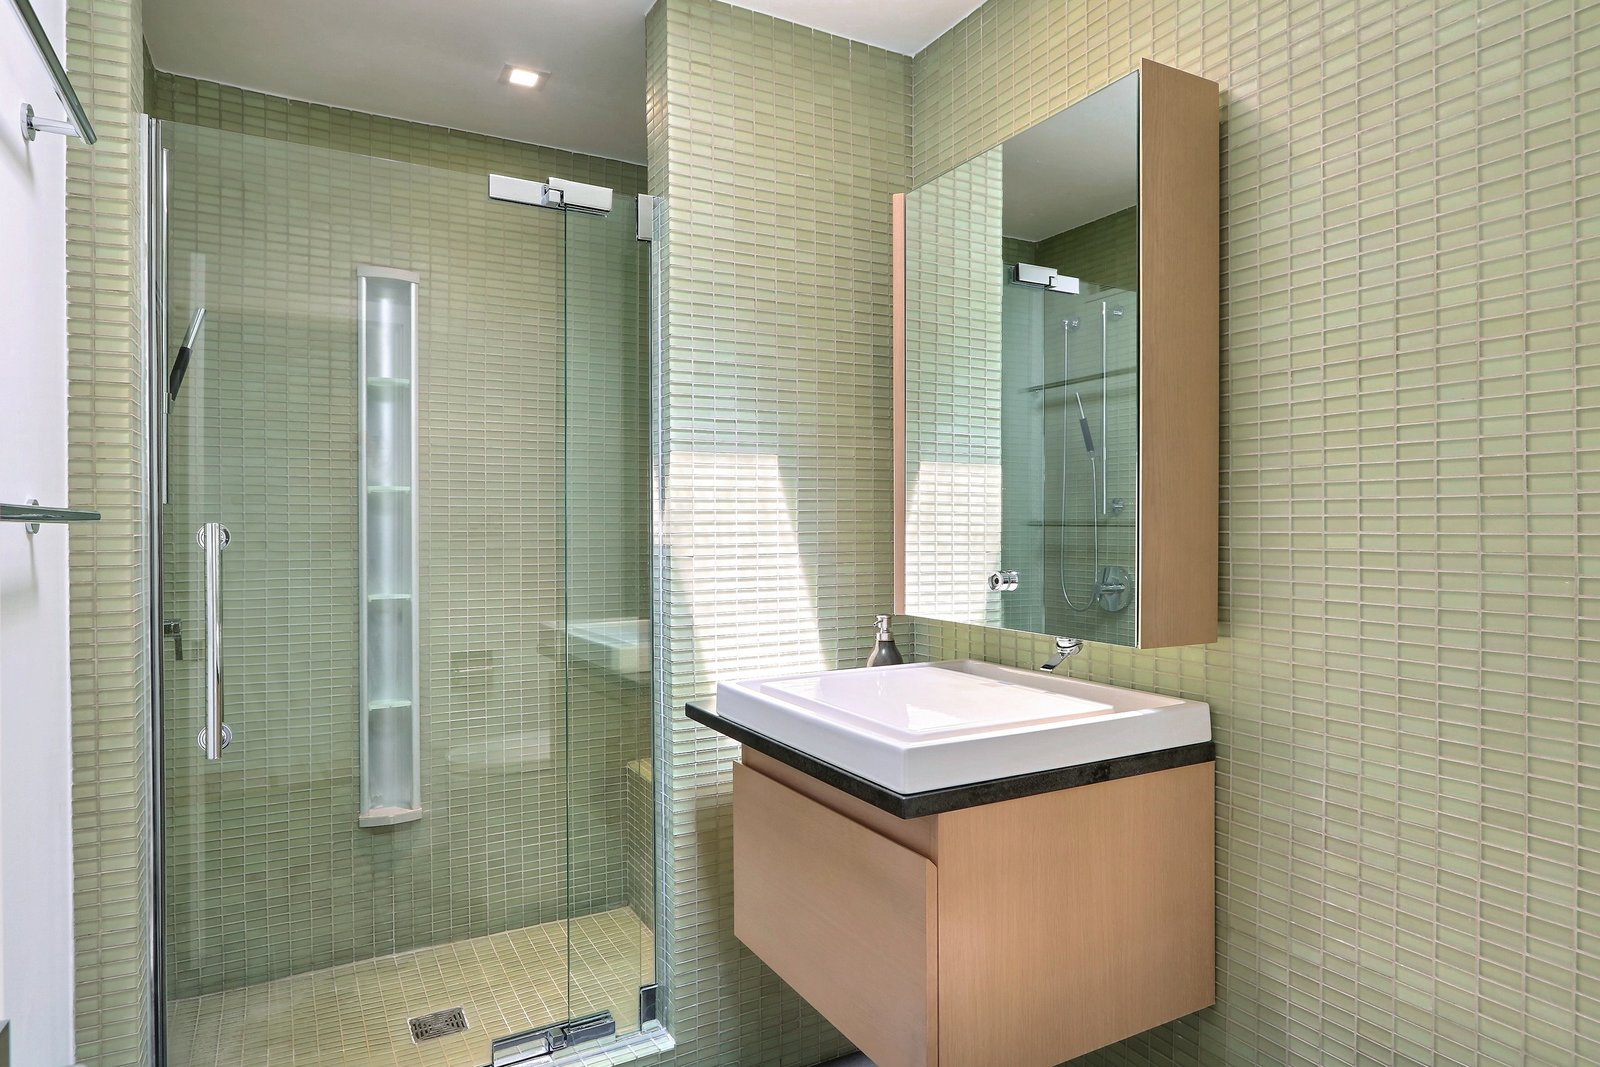 Bath, Stone, Wall Mount, Enclosed, Corner, Glass Tile, and Ceiling Home features two ensuite baths   Bath Enclosed Corner Wall Mount Photos from The Hill Gowdy House